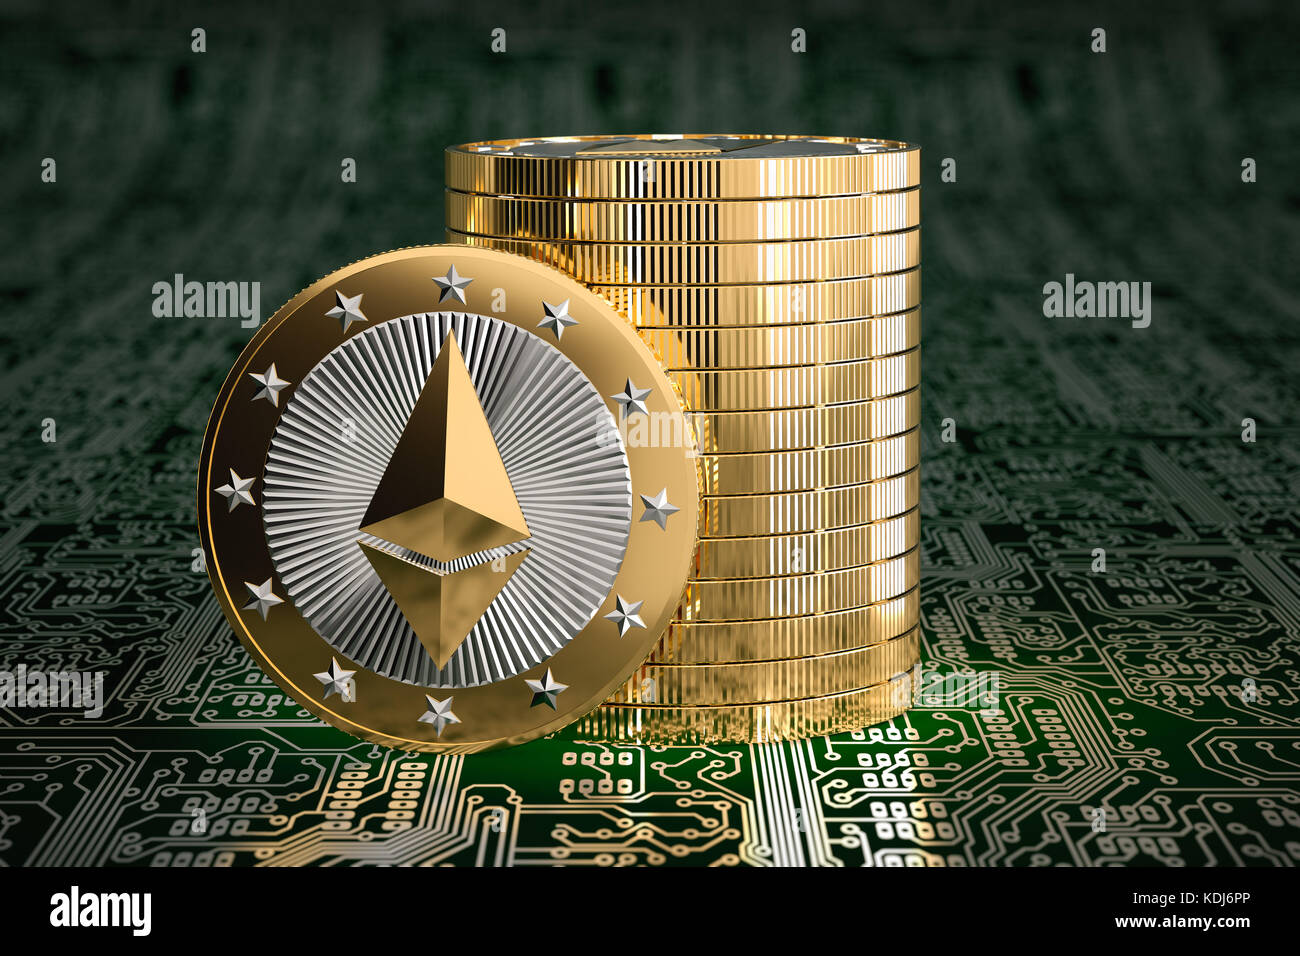 Ethereum Coin on circuit board layout - 3D Rendering Stock Photo